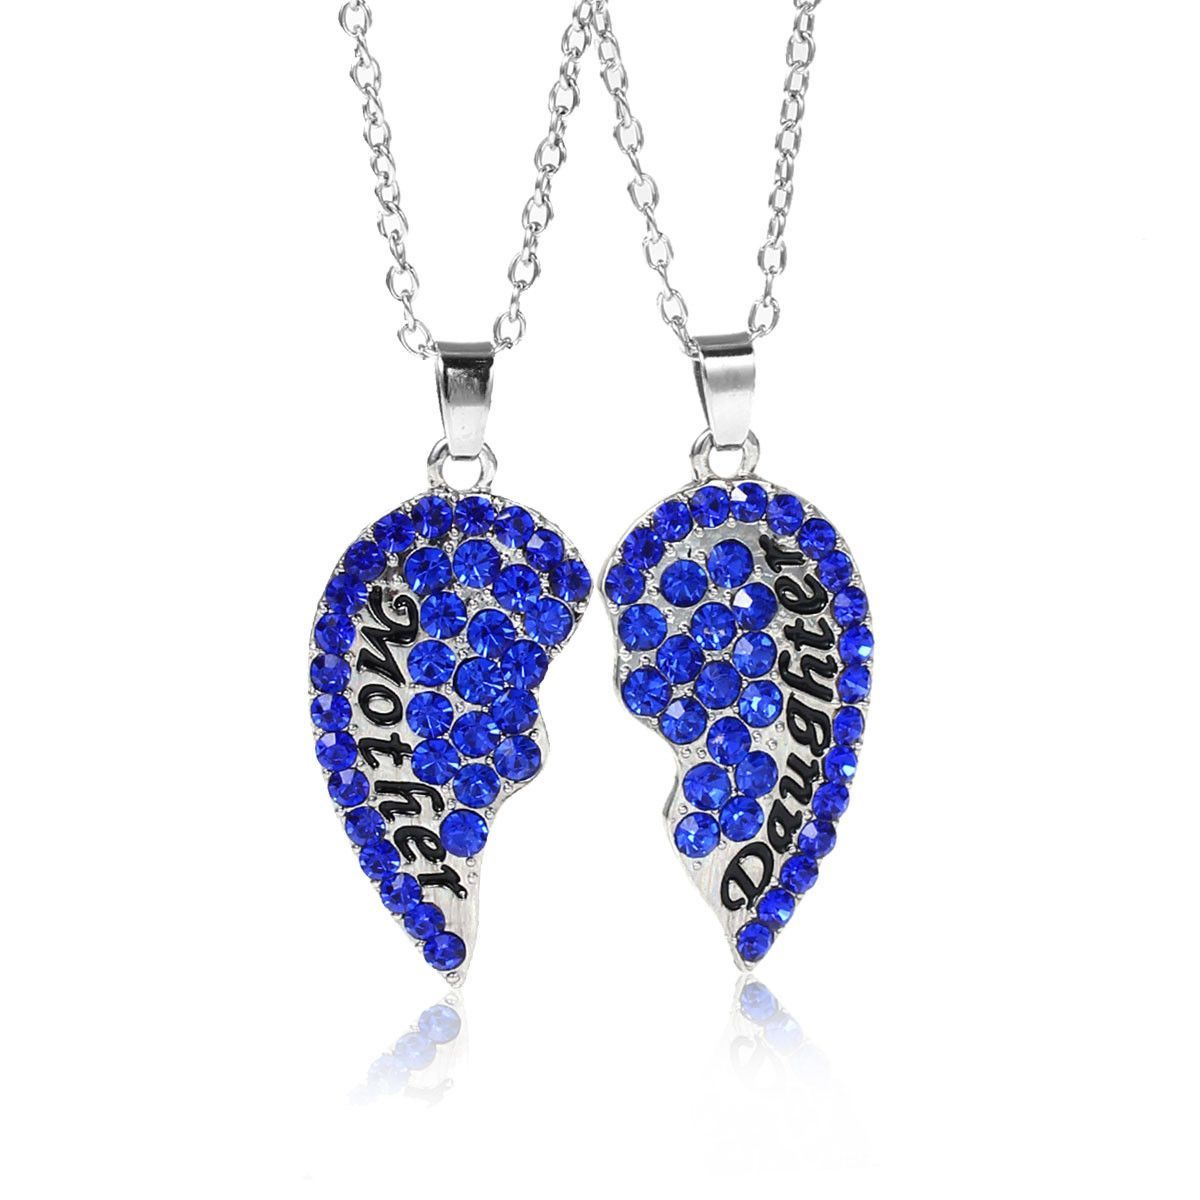 """Necklace Long Link Cable Chain Broken Heart Message """" Mother Pertaining To Most Popular Long Link Cable Chain Necklaces (Gallery 21 of 25)"""